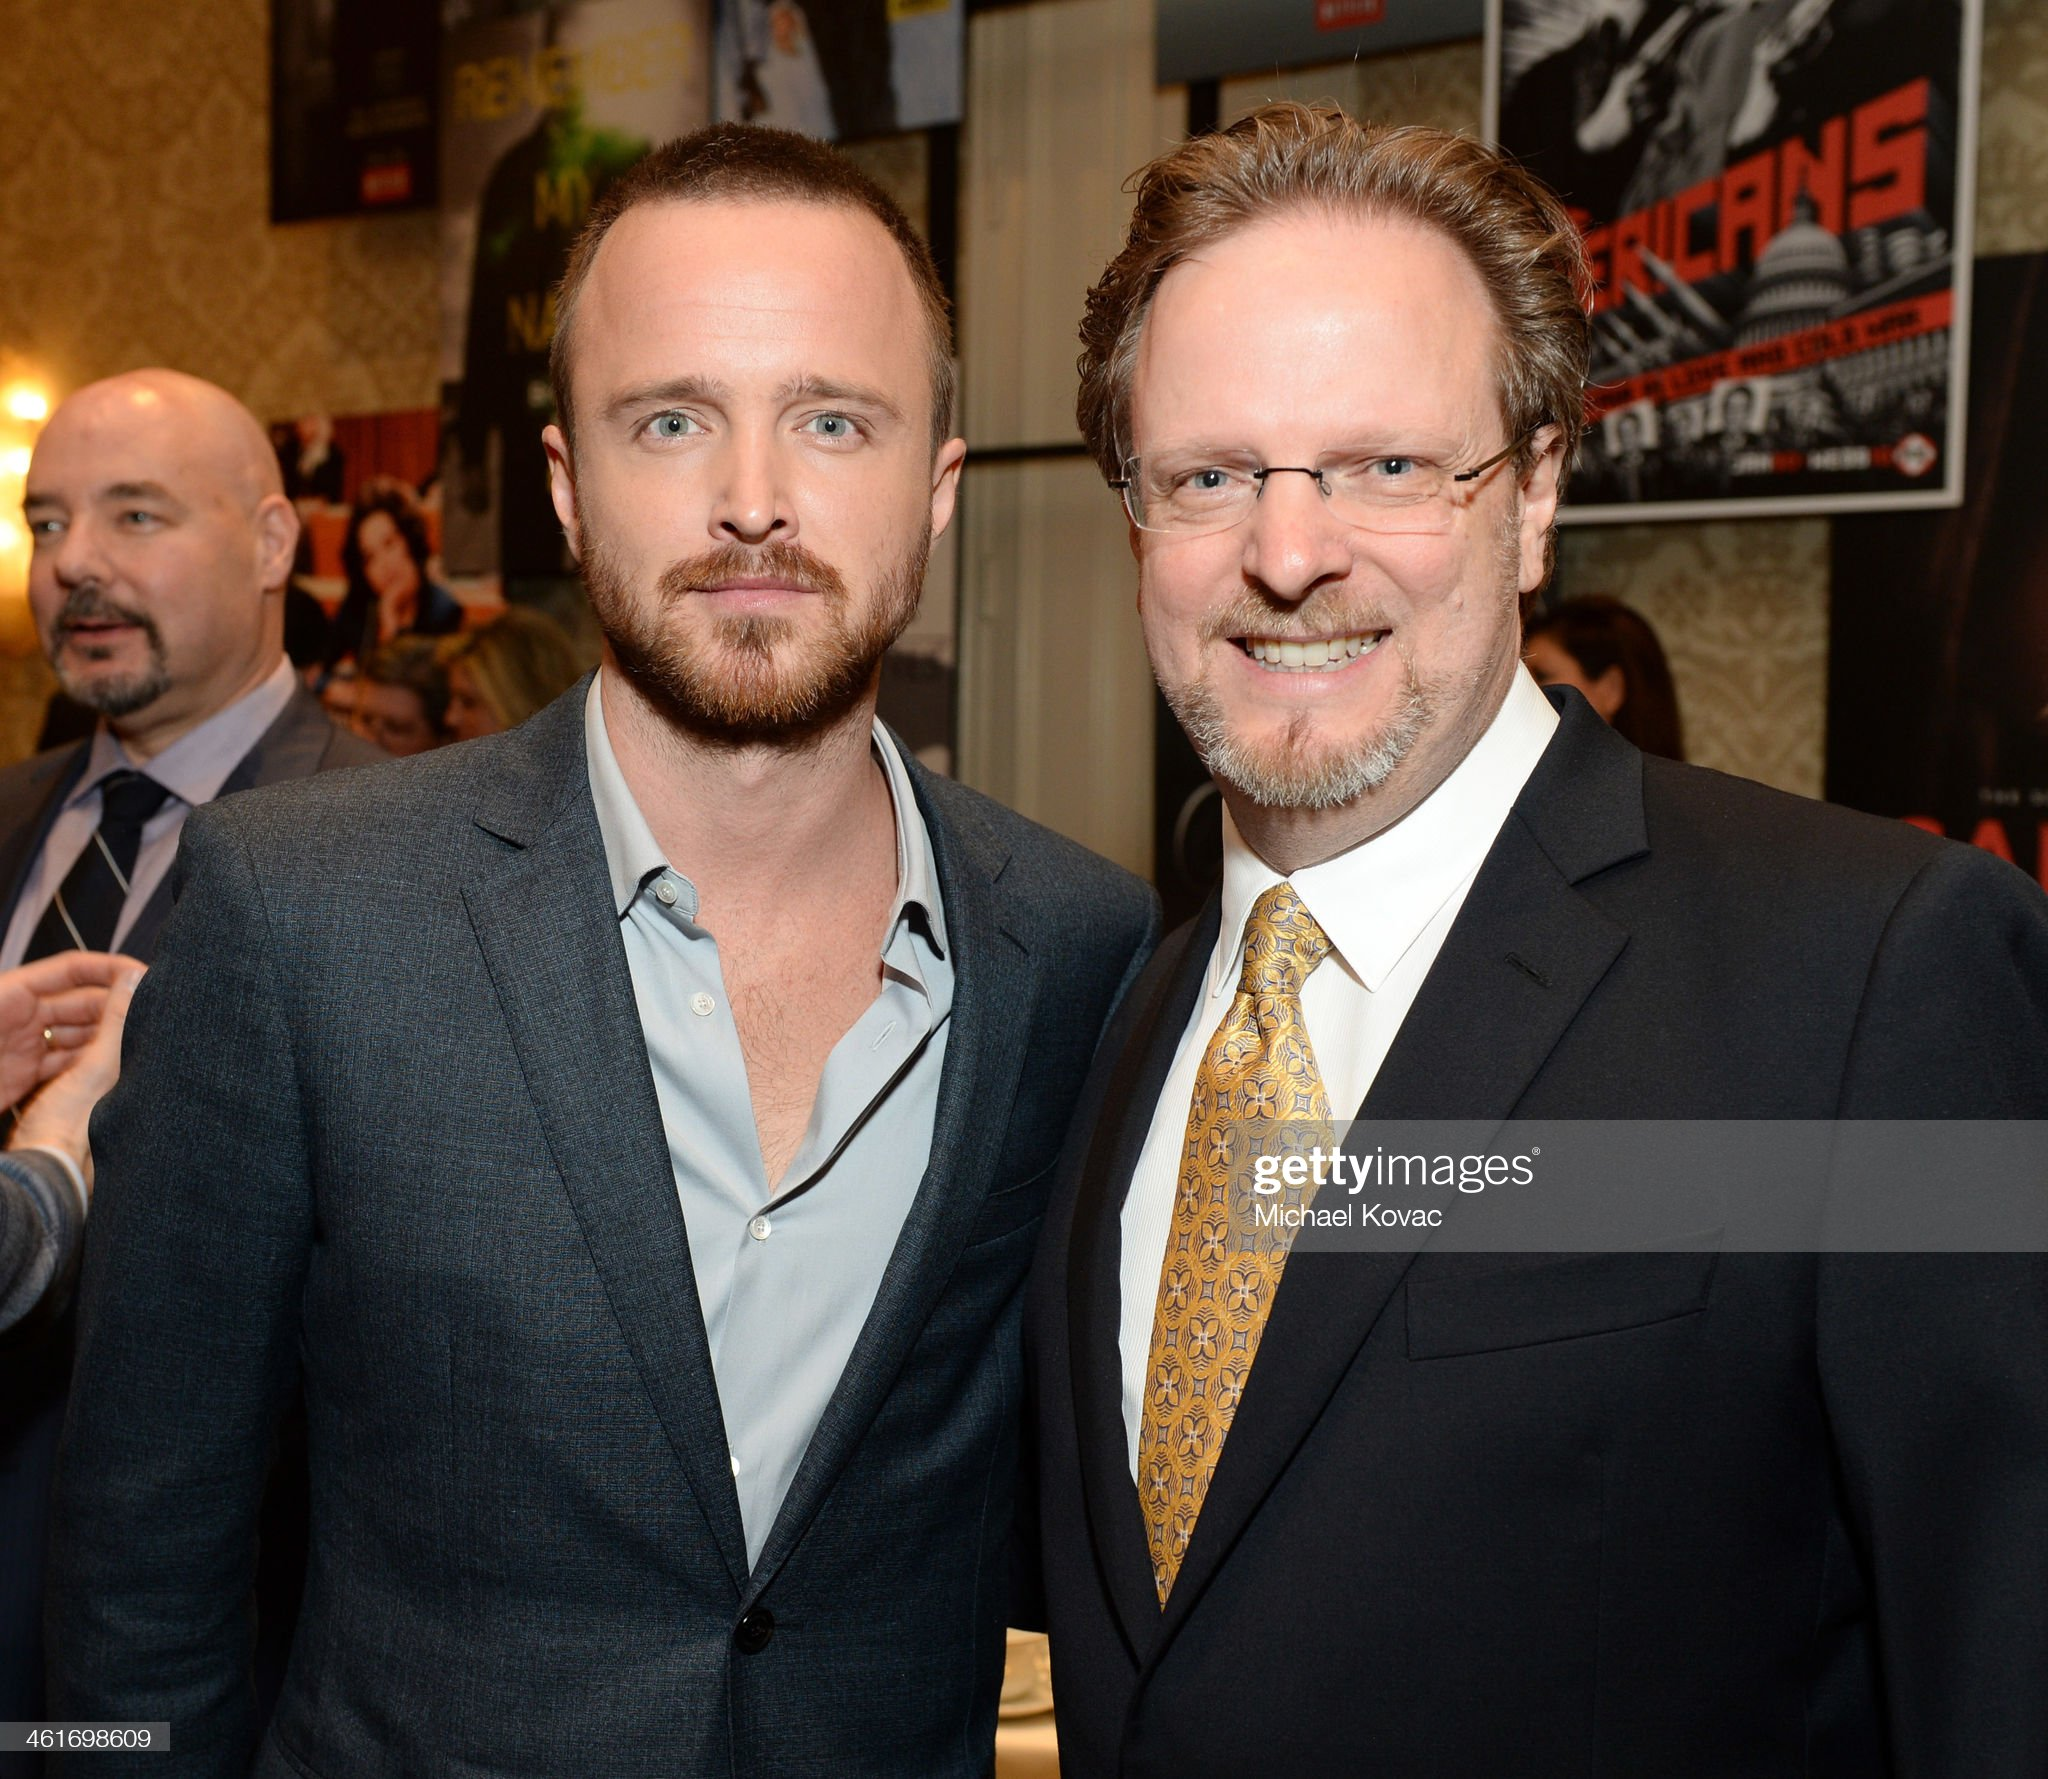 ¿Cuánto mide Aaron Paul? - Altura - Real height Actor-aaron-paul-and-president-and-ceo-of-the-american-film-institute-picture-id461698609?s=2048x2048